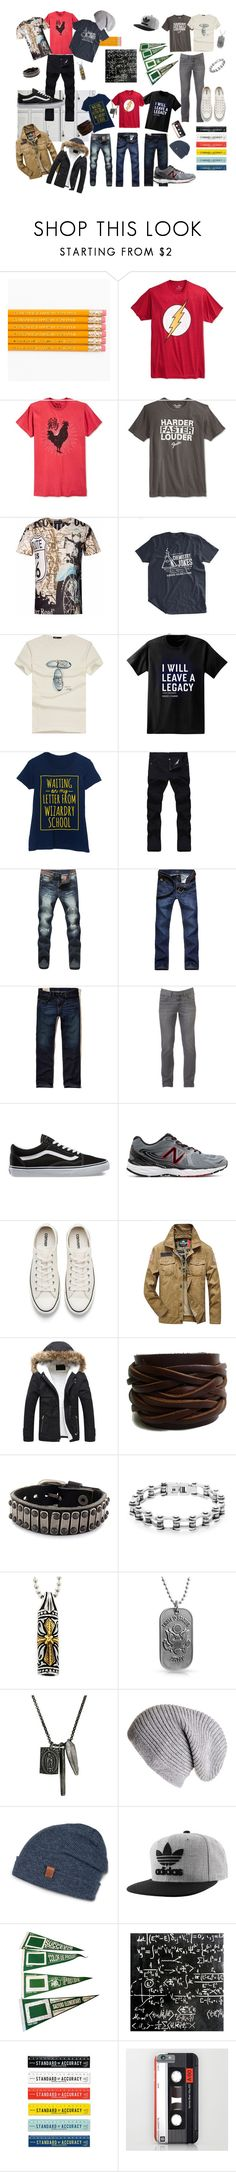 """""""School Daze II"""" by jwcabell ❤ liked on Polyvore featuring Bioworld, Univibe, Lucky Brand, Paul Frank, Hollister Co., Urban Pipeline, Vans, New Balance, Converse and West Coast Jewelry"""